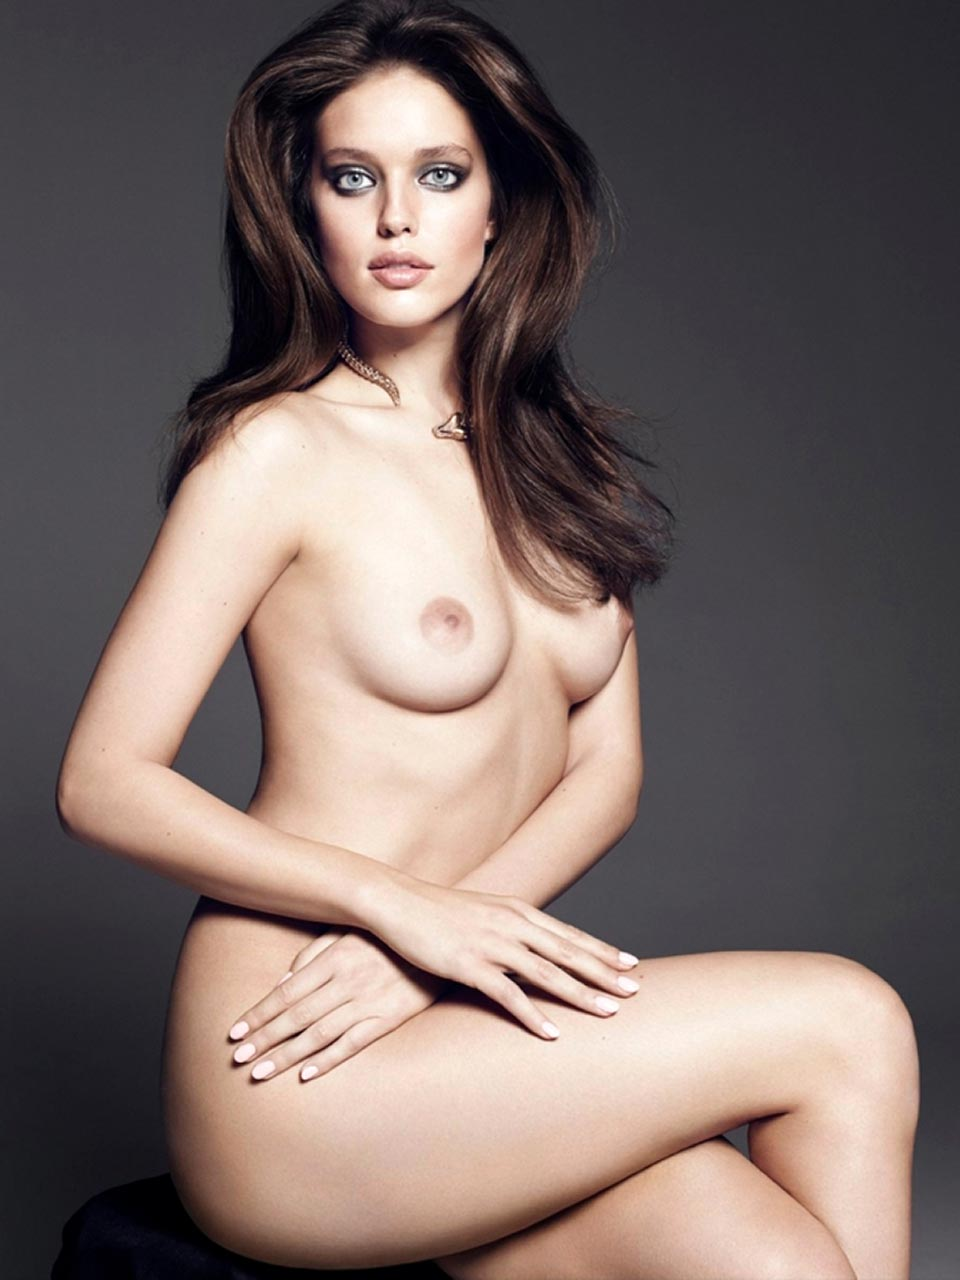 Topless Emily Didonato nudes (42 photo), Topless, Fappening, Instagram, see through 2006